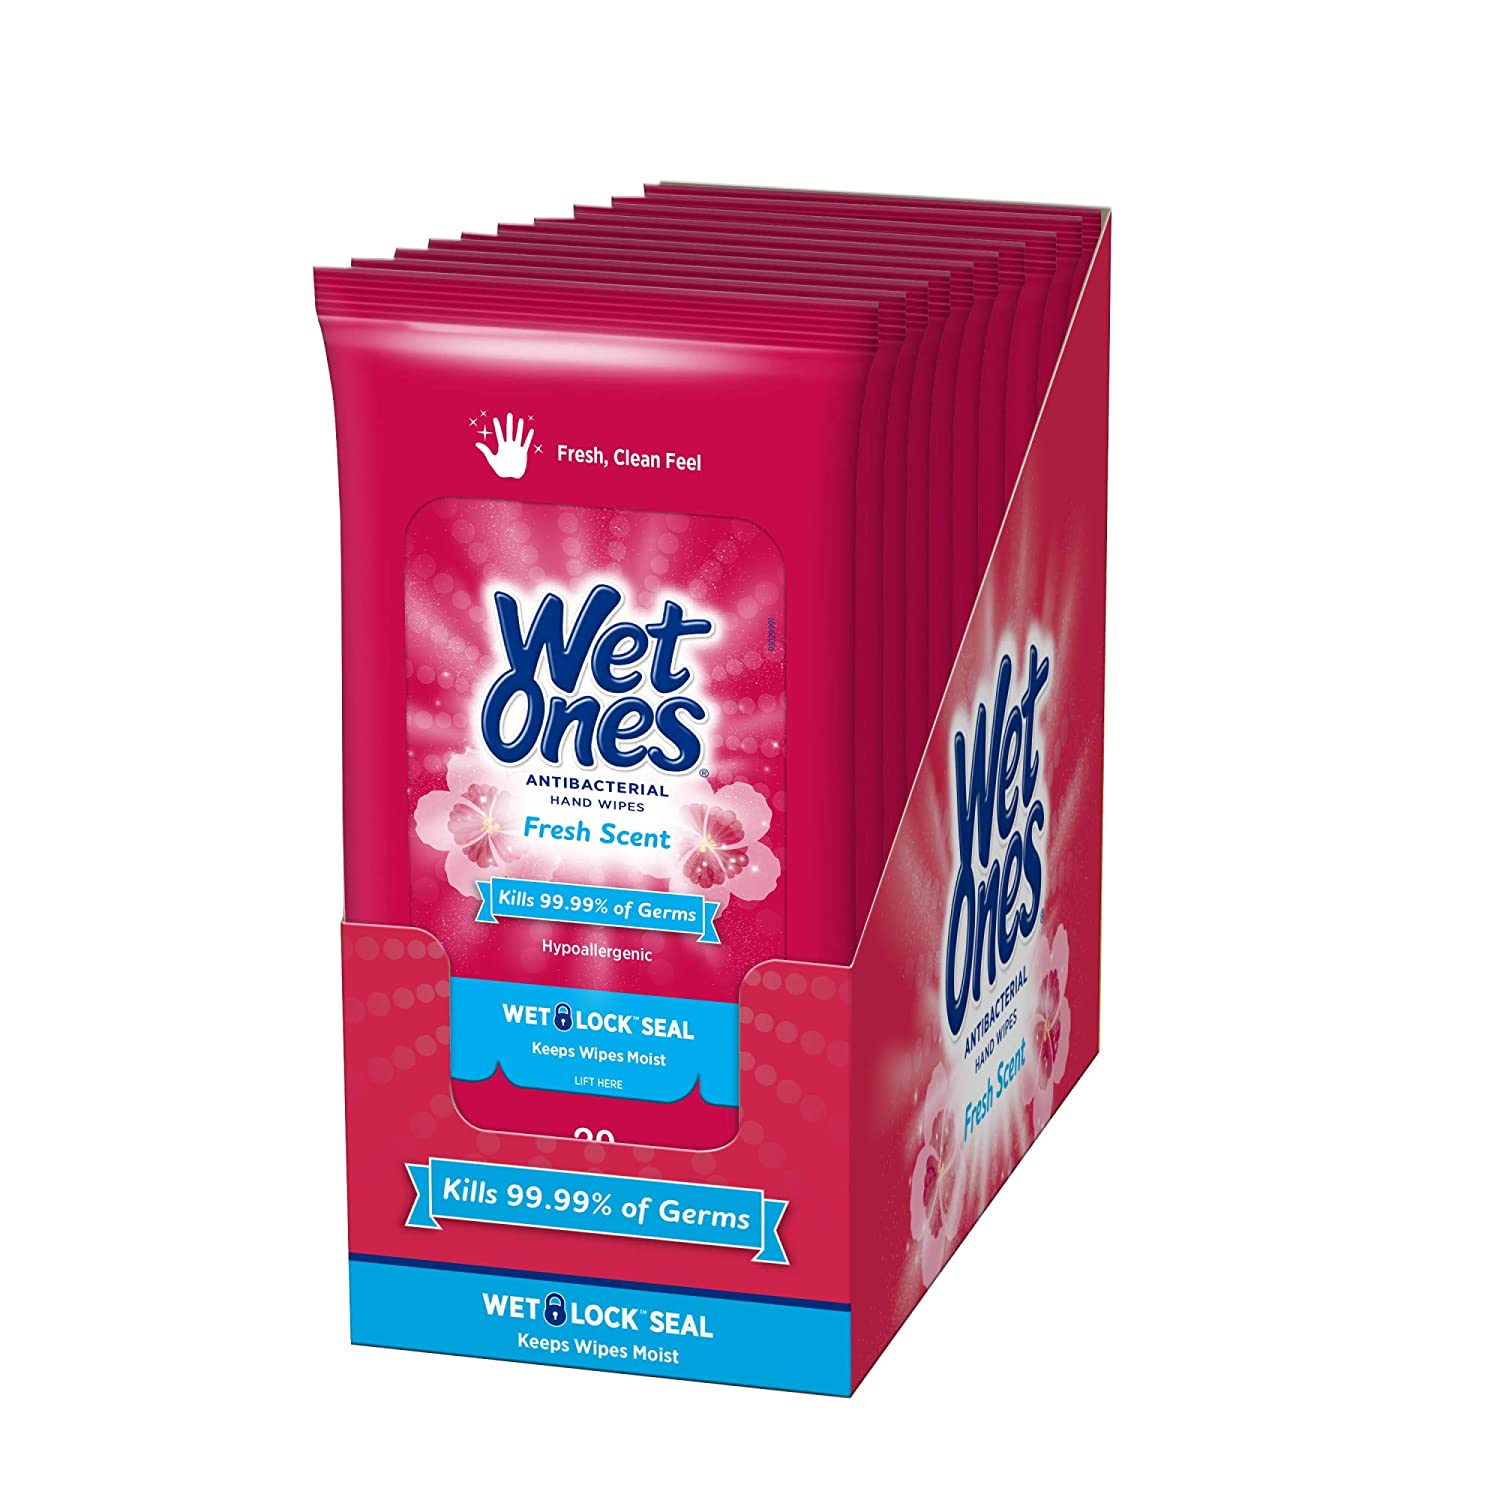 6 Packs - 60 Wipes Wet Wipes Travel Size